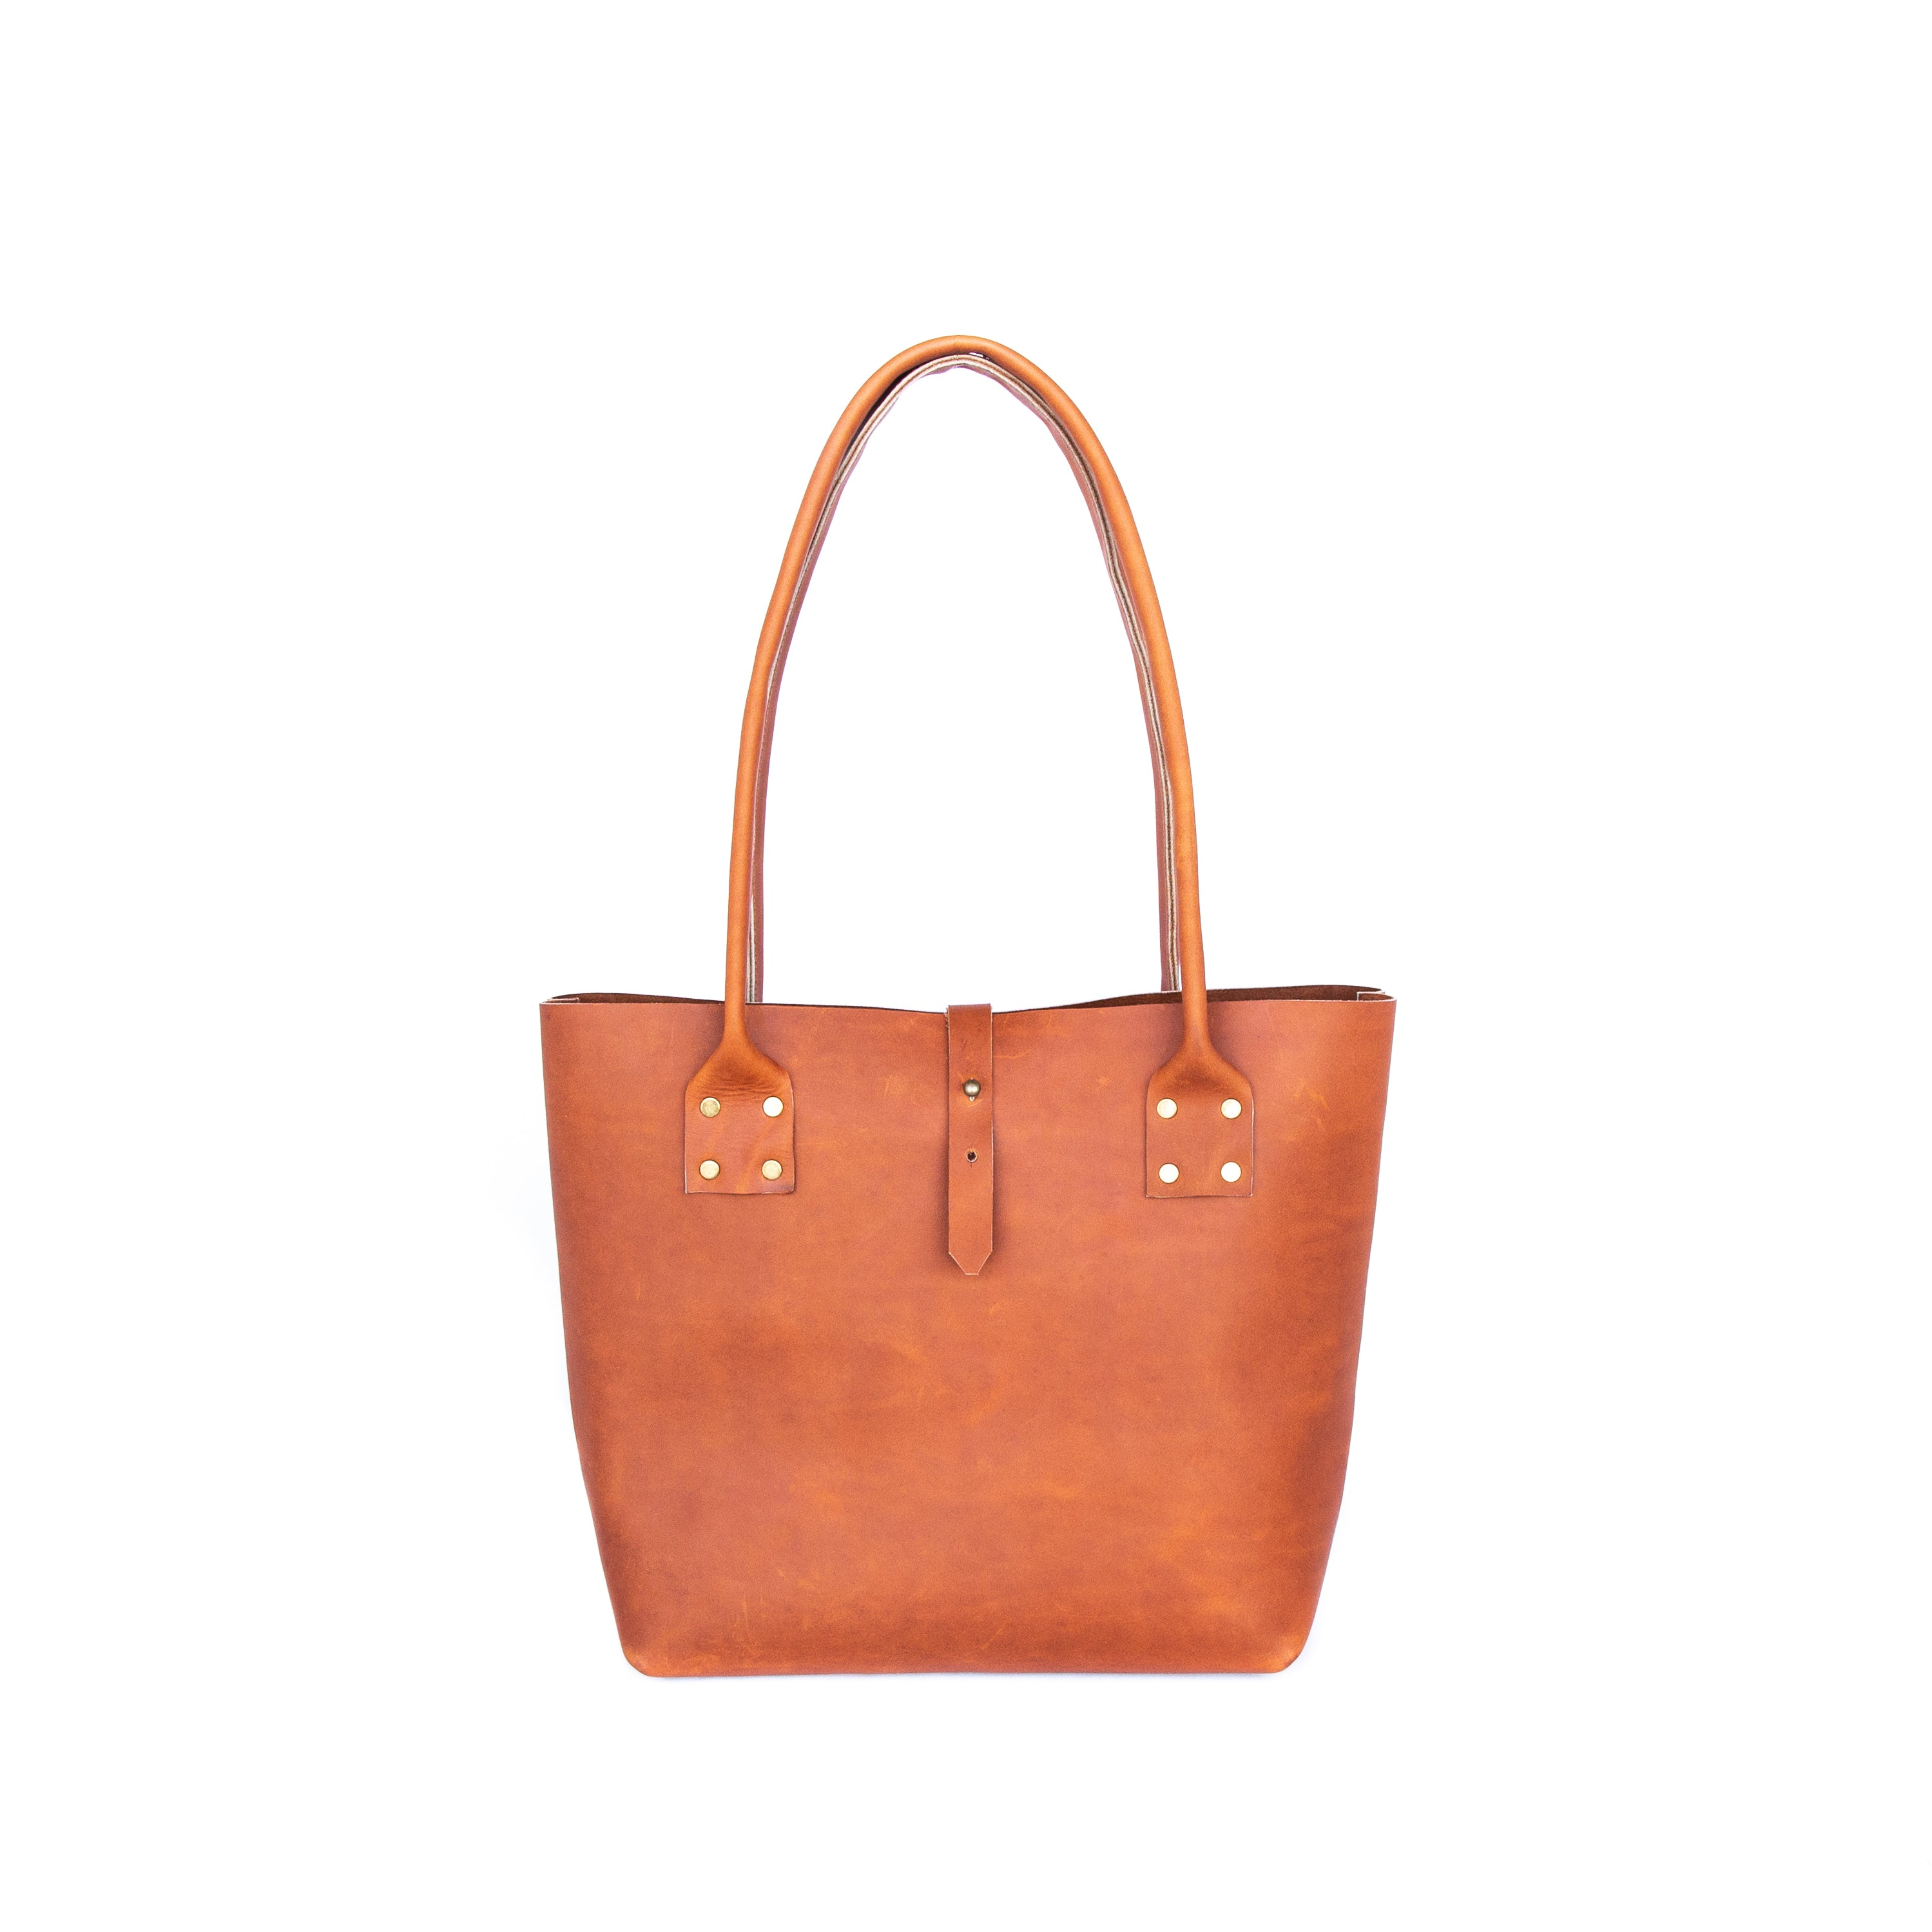 Refined Tote in Ochre Leather - handcrafted by Market Canvas Leather in Tofino, BC, Canada